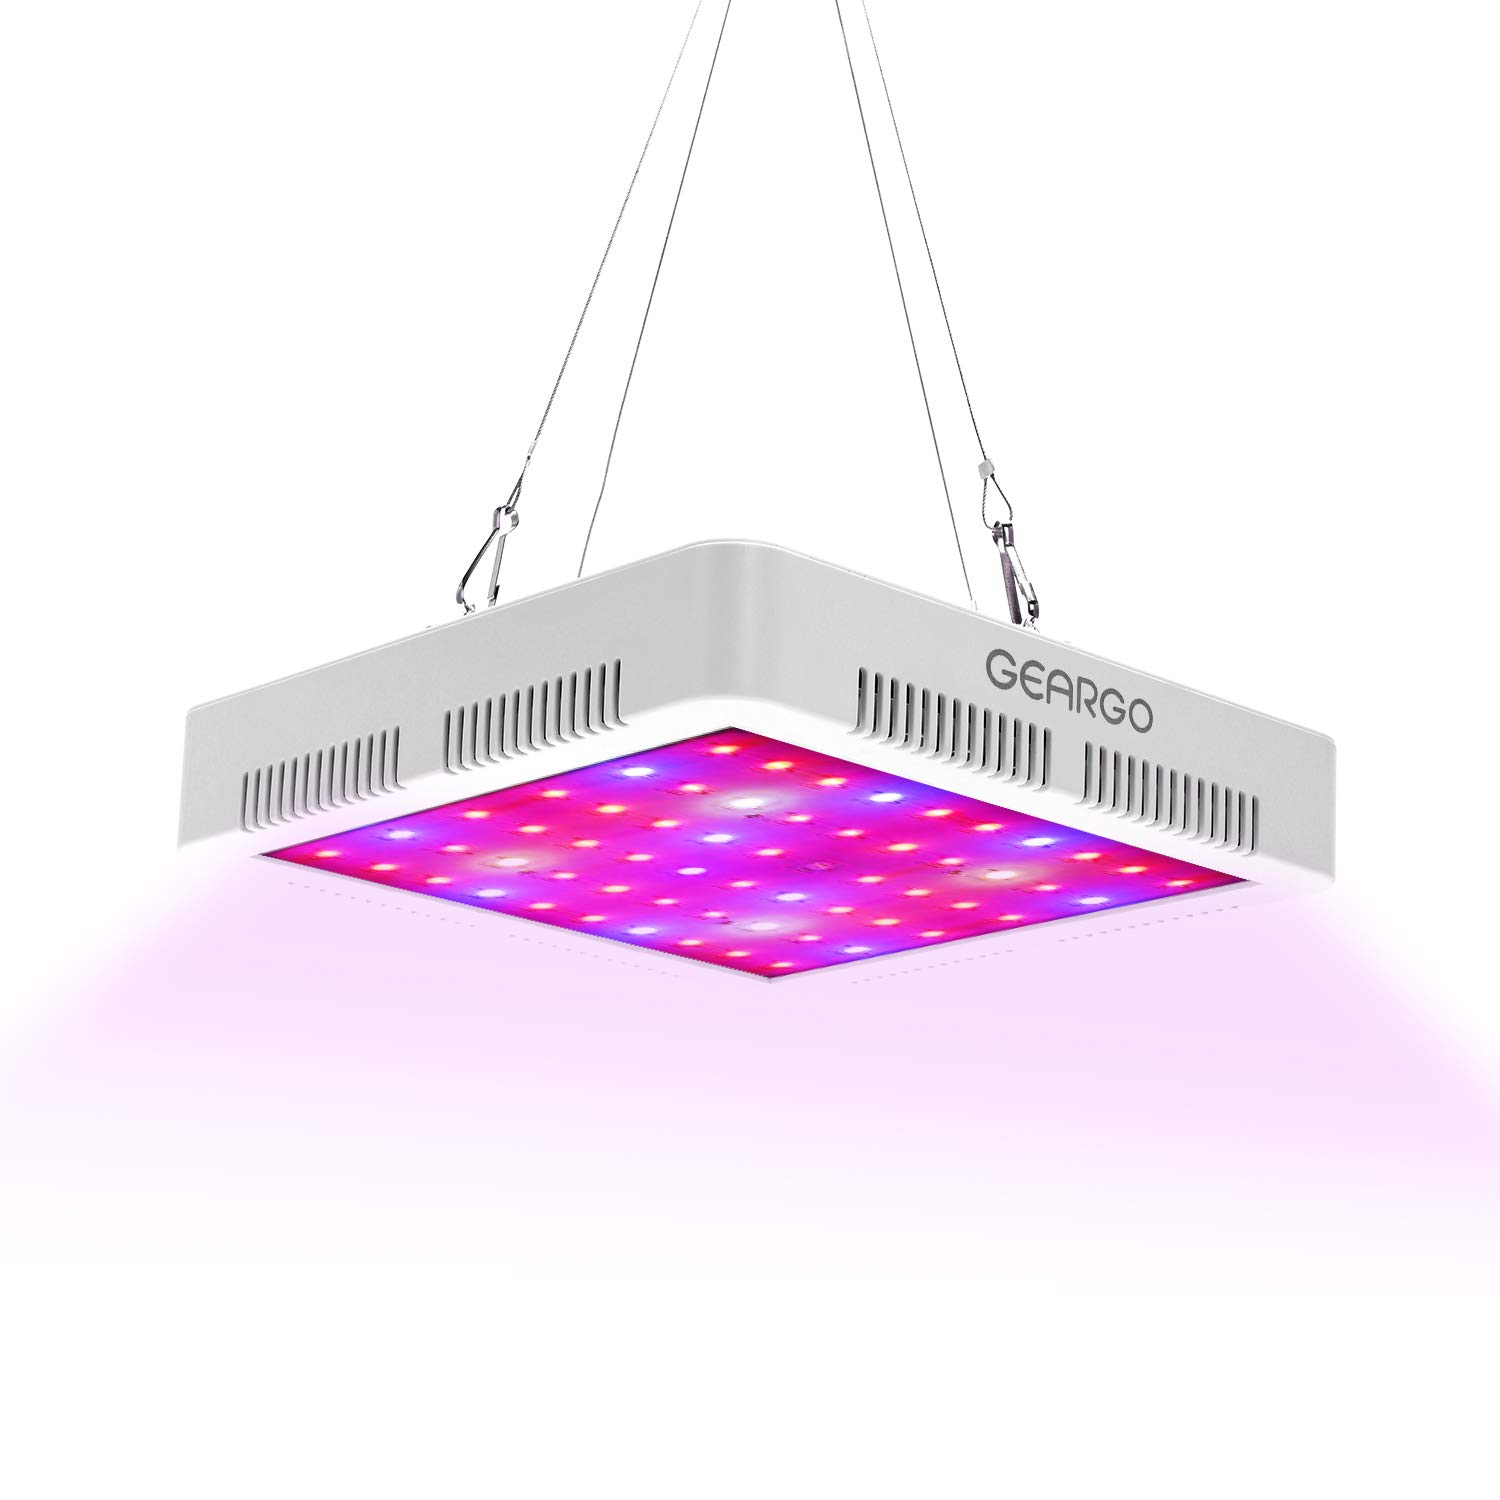 Led Plant Grow Light Full Spectrum, GEARGO 300W 100pcs Led UV & IR Grow Lamp with Cooling Fan for Indoor Plants Hydroponic Greenhouse Veg and Flower (Install Accessories Included)